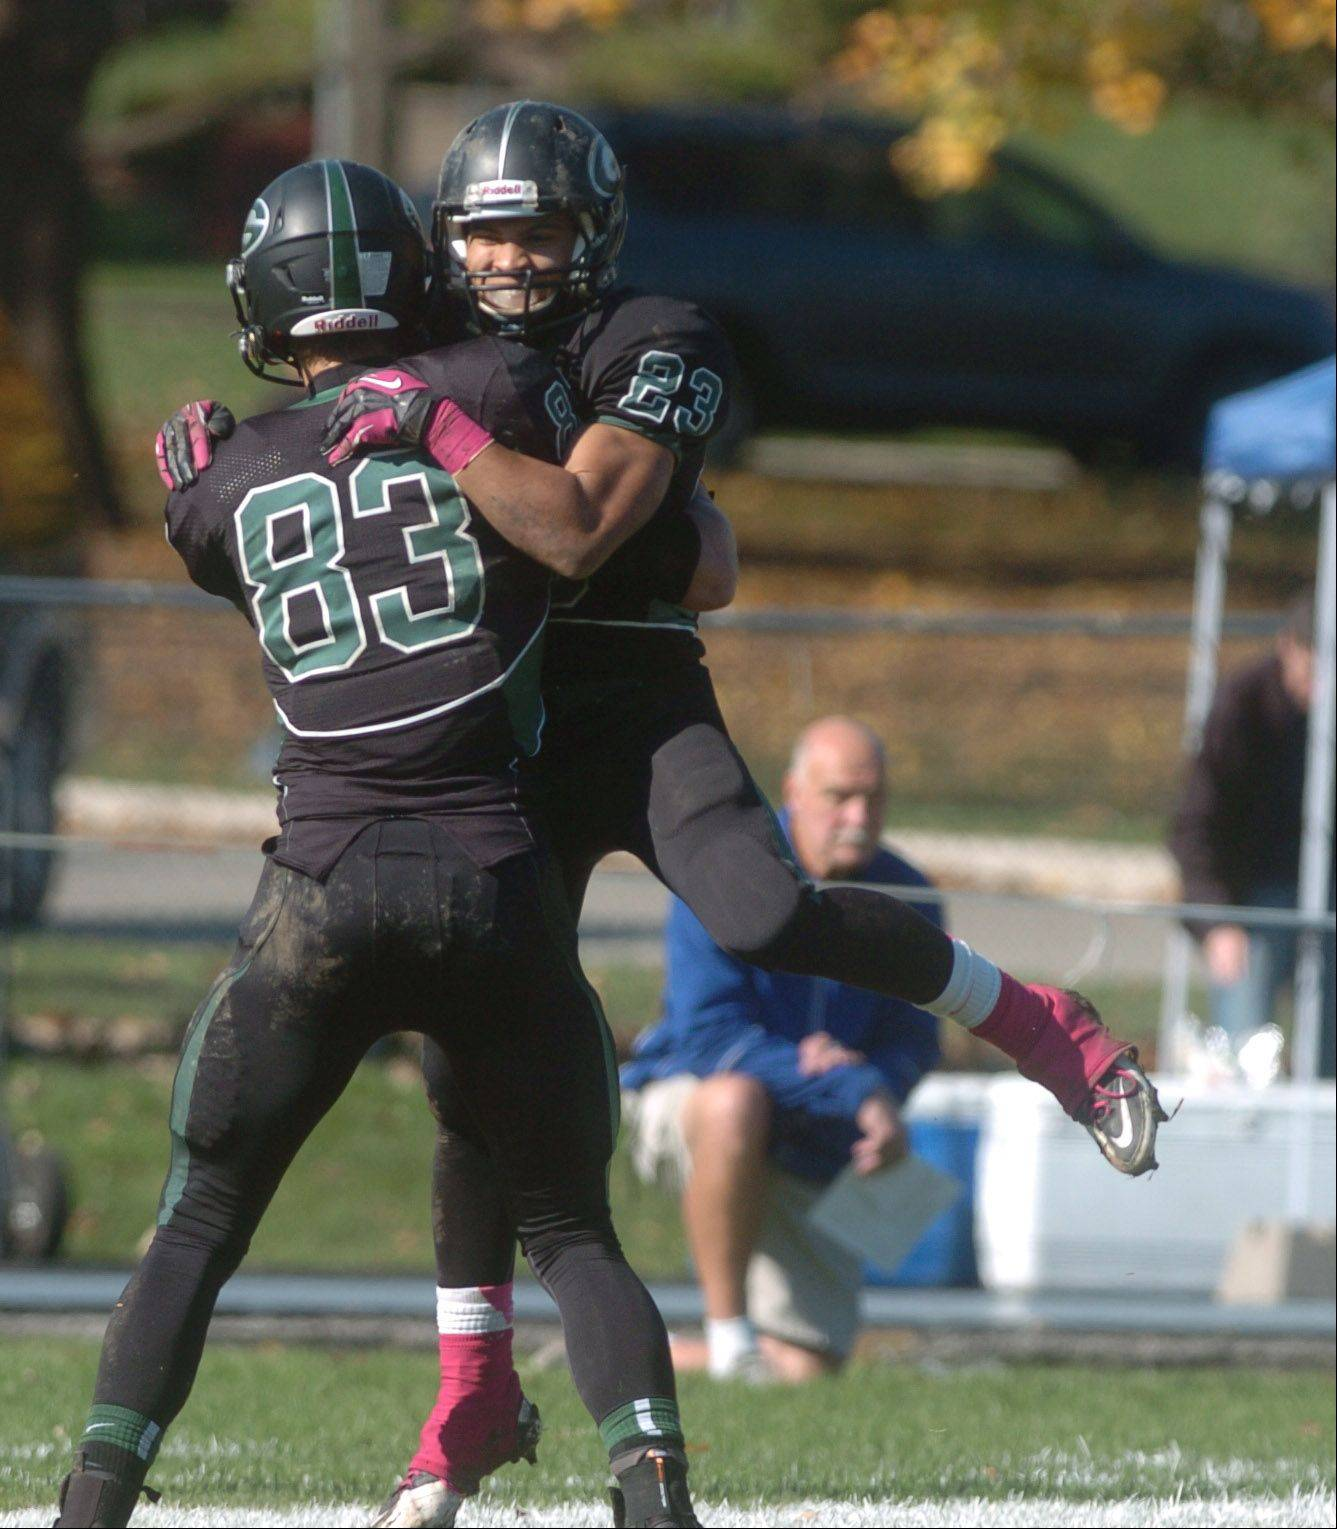 Nathan Marcus,left, and Scott Andrews of Glenbard West celebrate after a touchdown during the Elk Grove at Glenbard West football game Saturday.